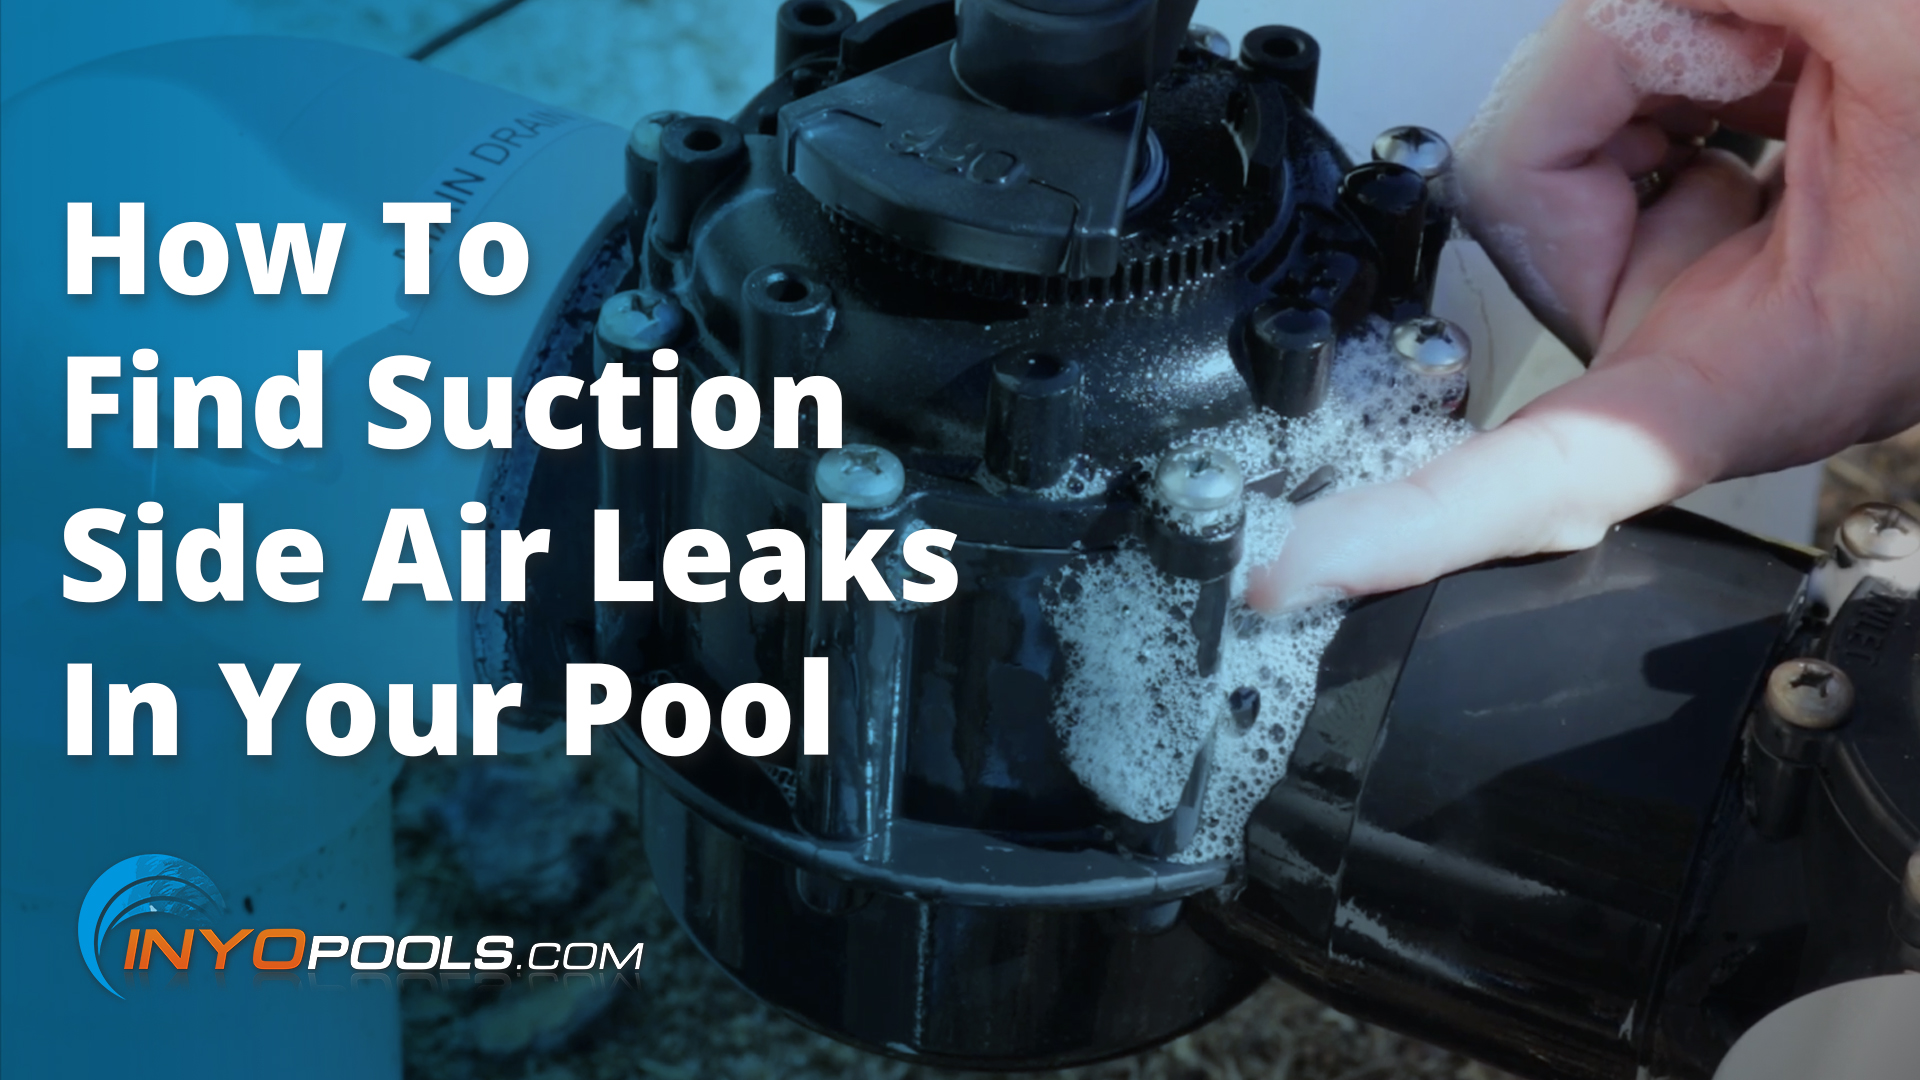 How to test for suction side air leaks